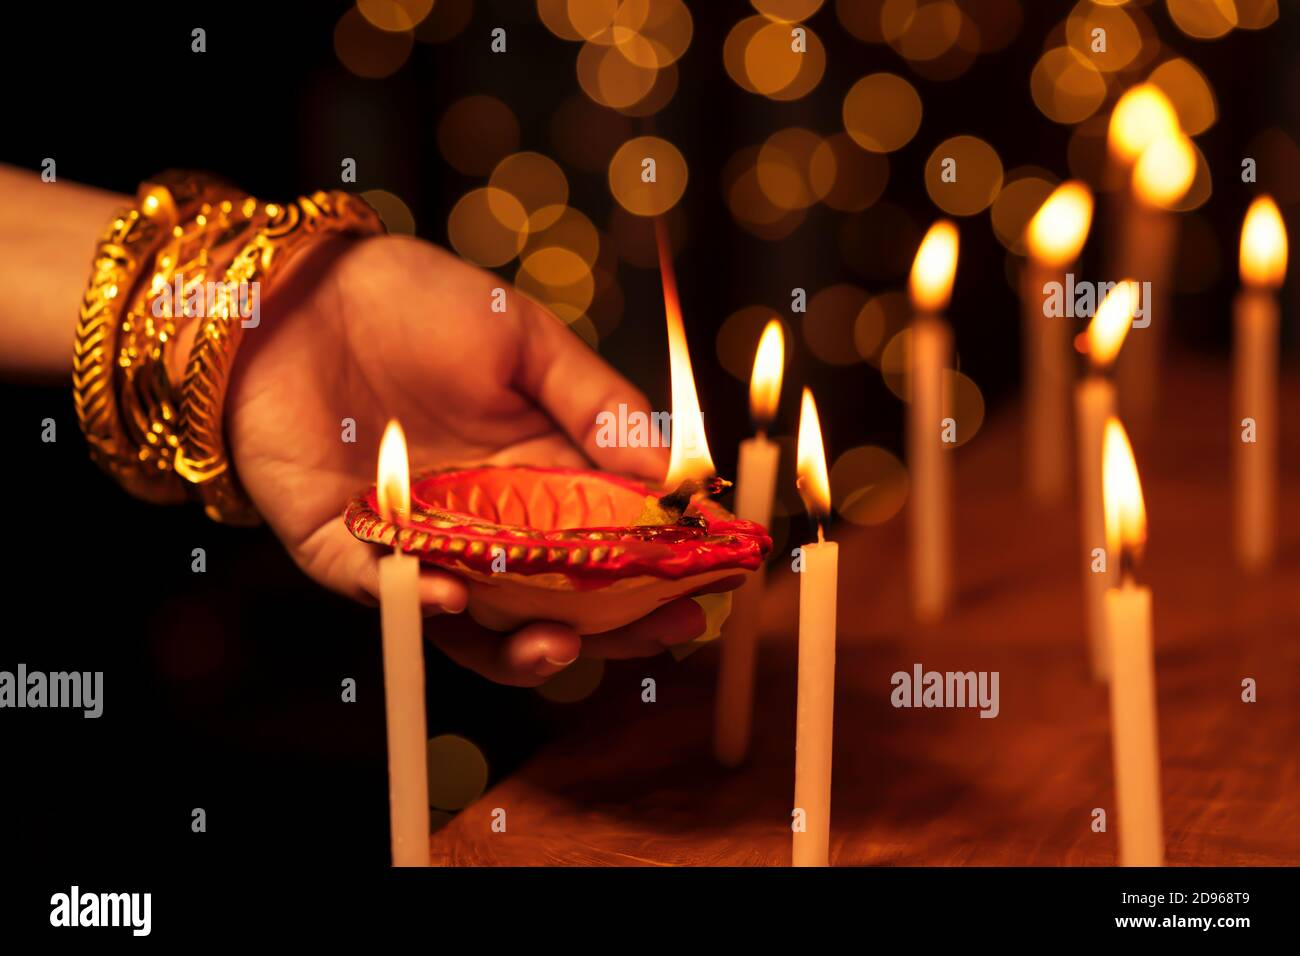 Indian housewife or bride woman wearing traditional gold jewelry, lighting candles with a clay diya or oil lamp in one hand at a temple on Diwali nigh Stock Photo